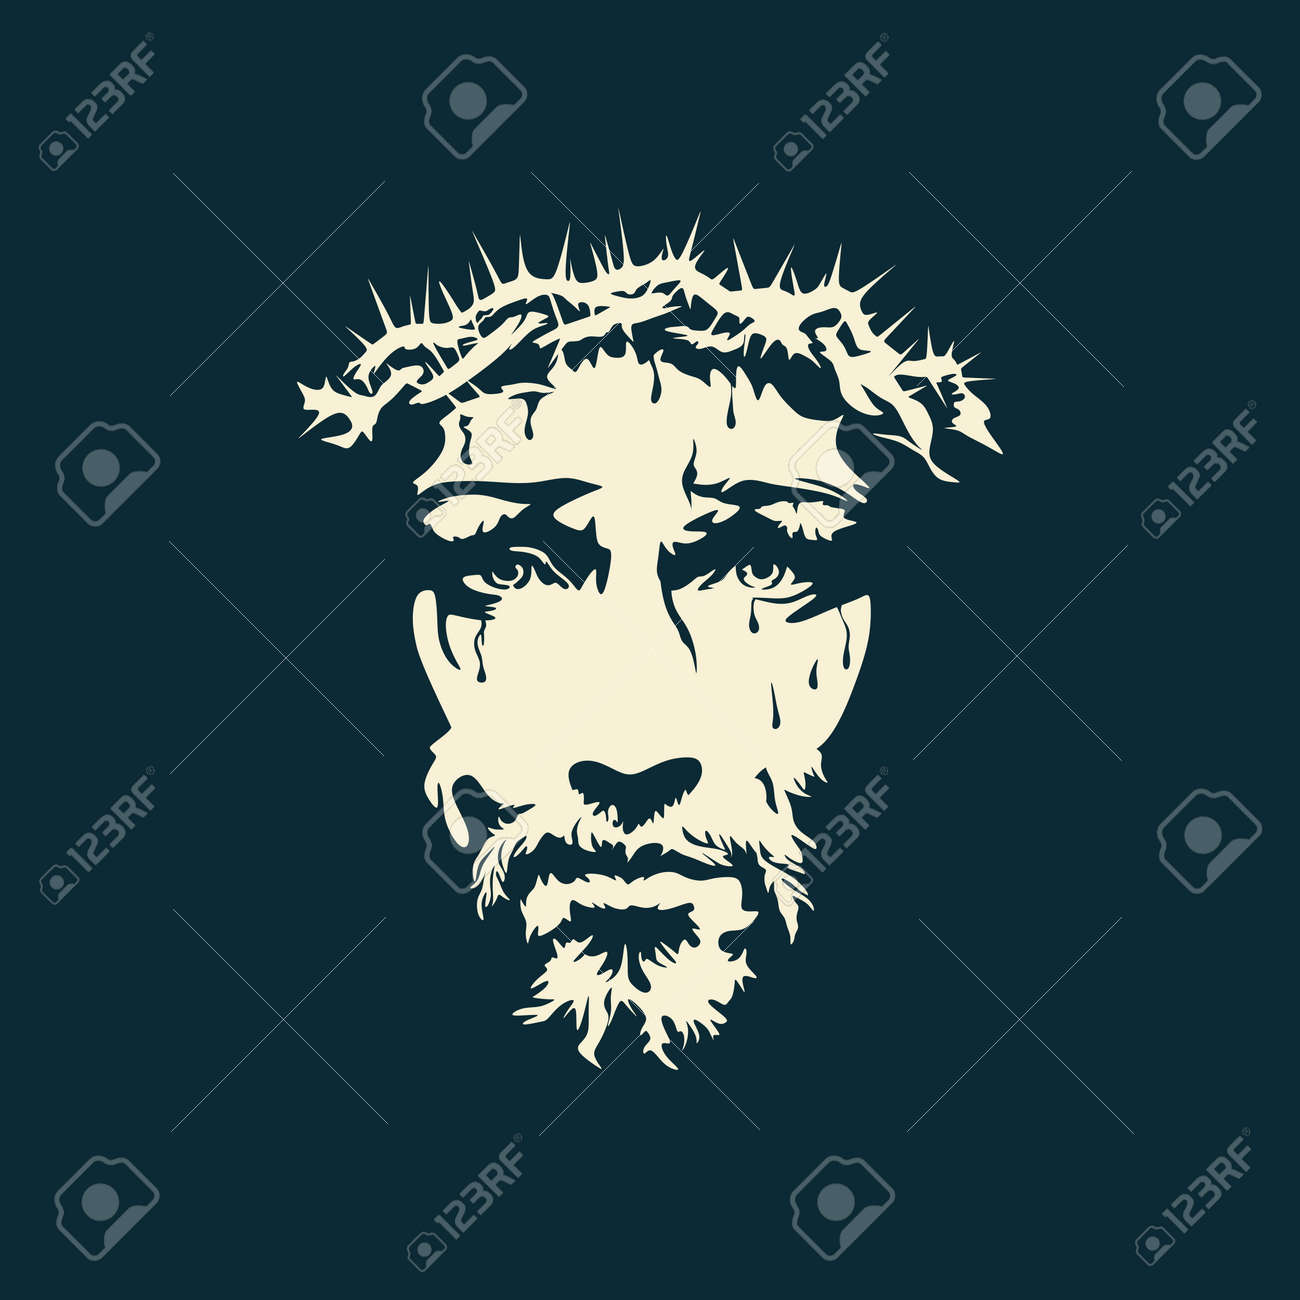 Face of Christ hand drawn - 47426016